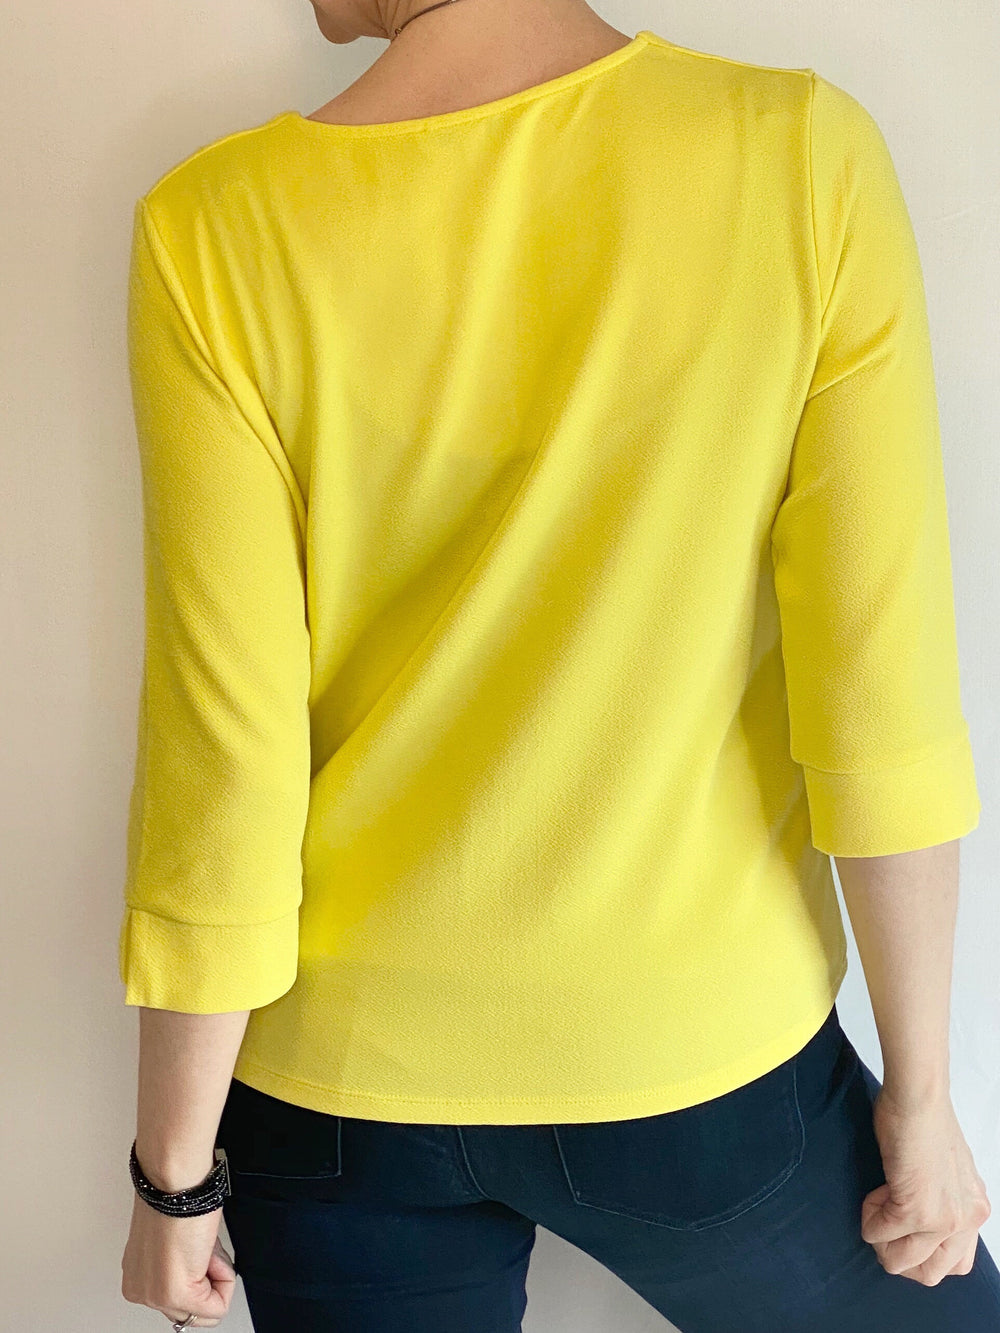 3/4 Sleeve Limelight Top